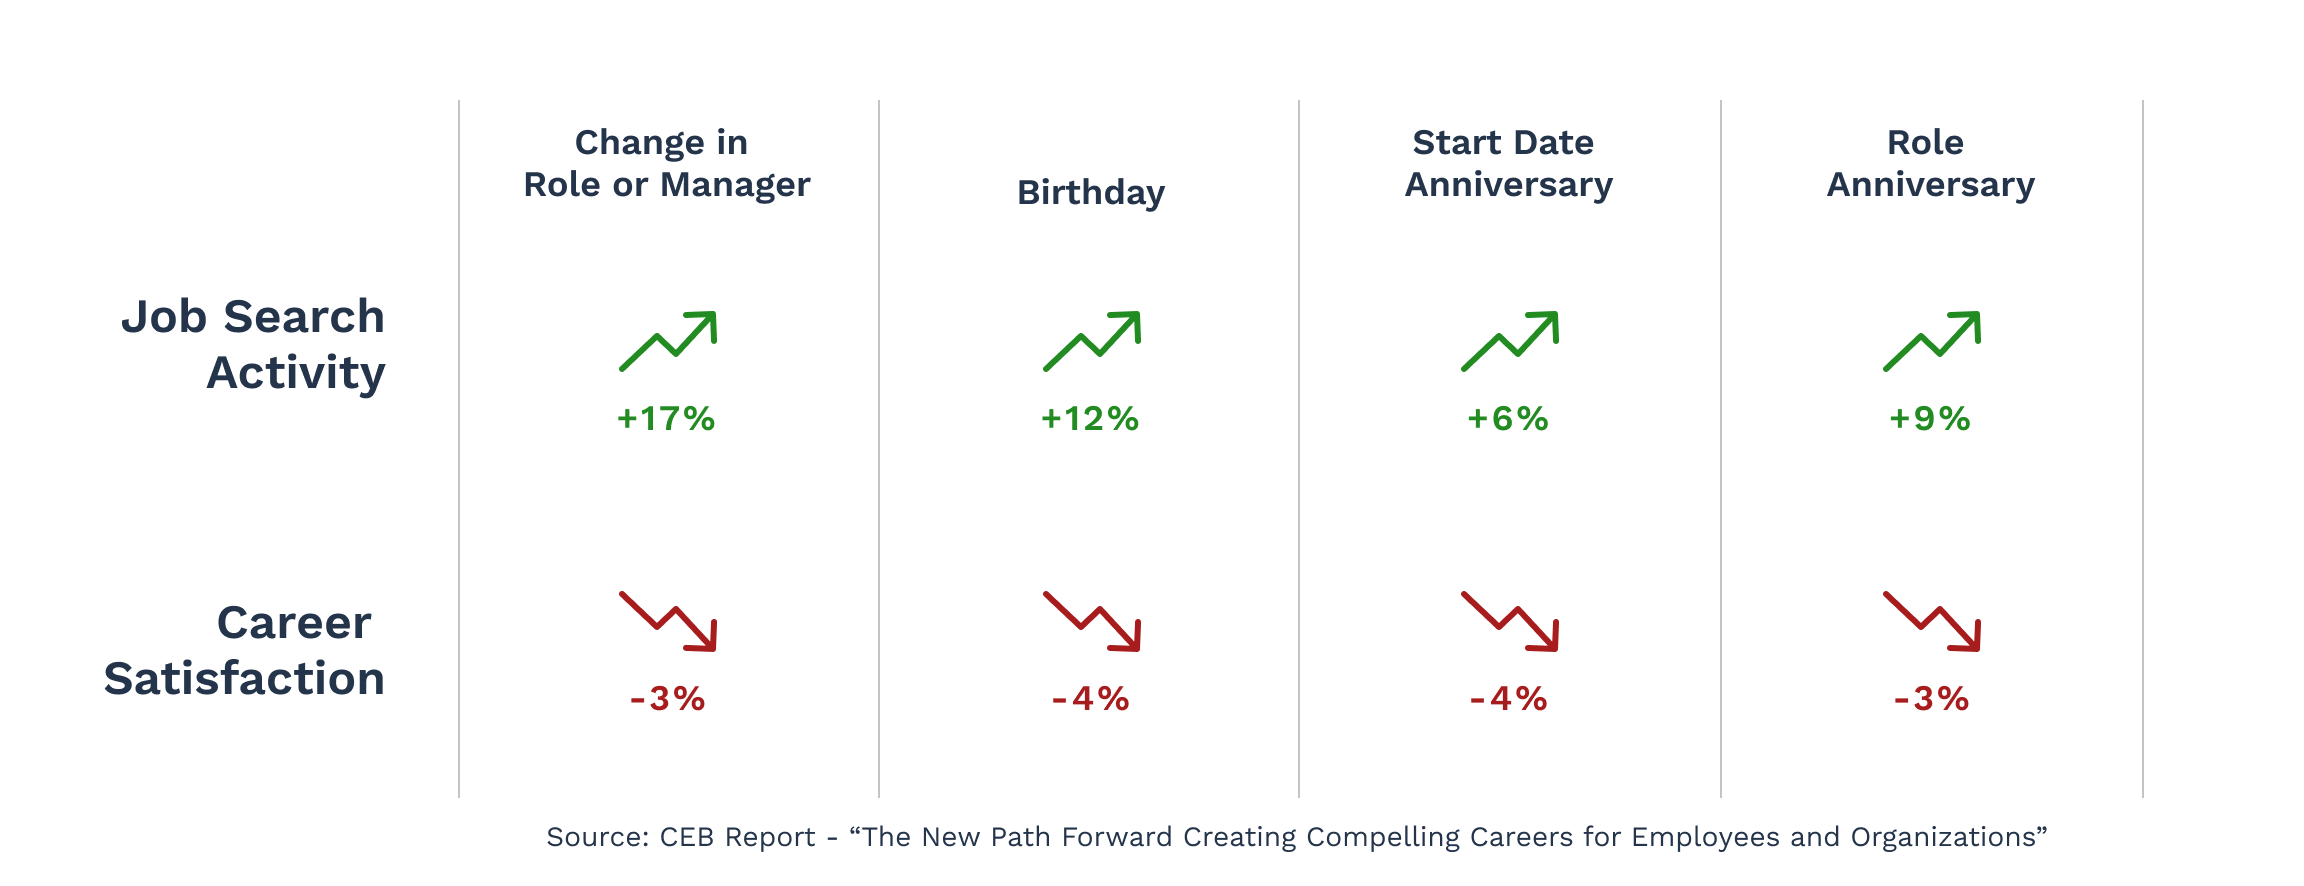 Job search activity rises around manager changes, birthdays, and anniversaries